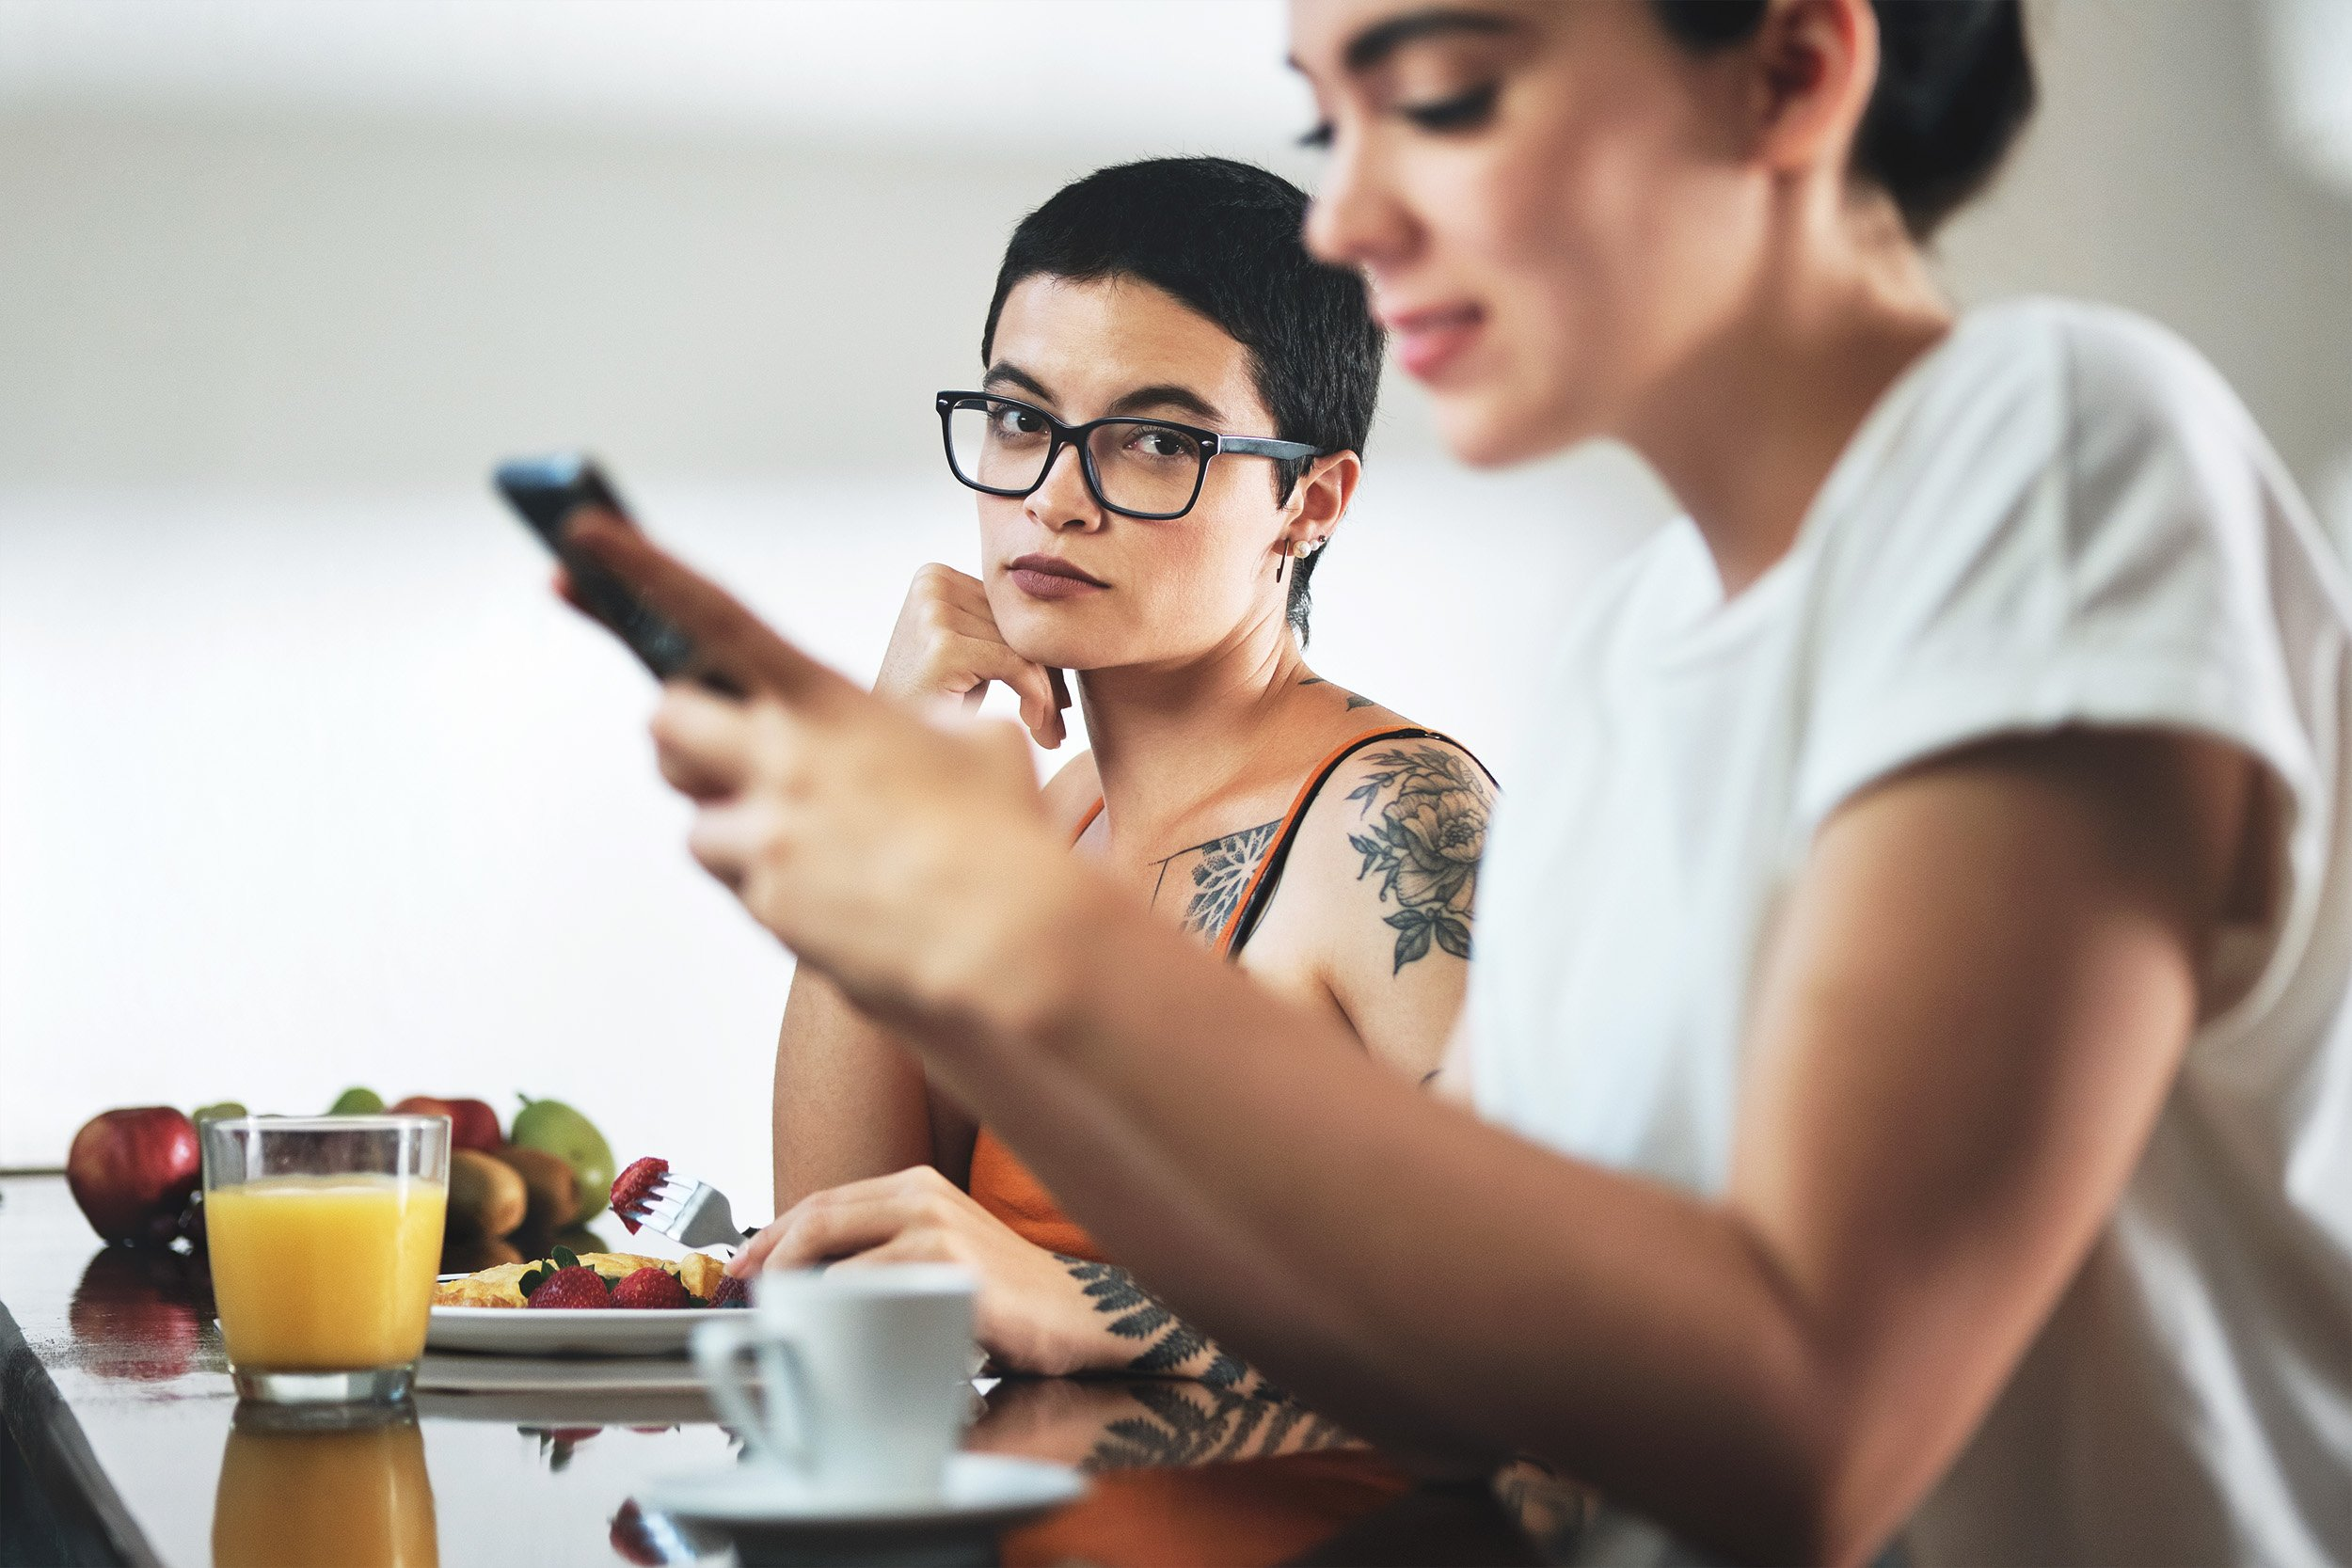 How To Navigate Social Media As A Couple